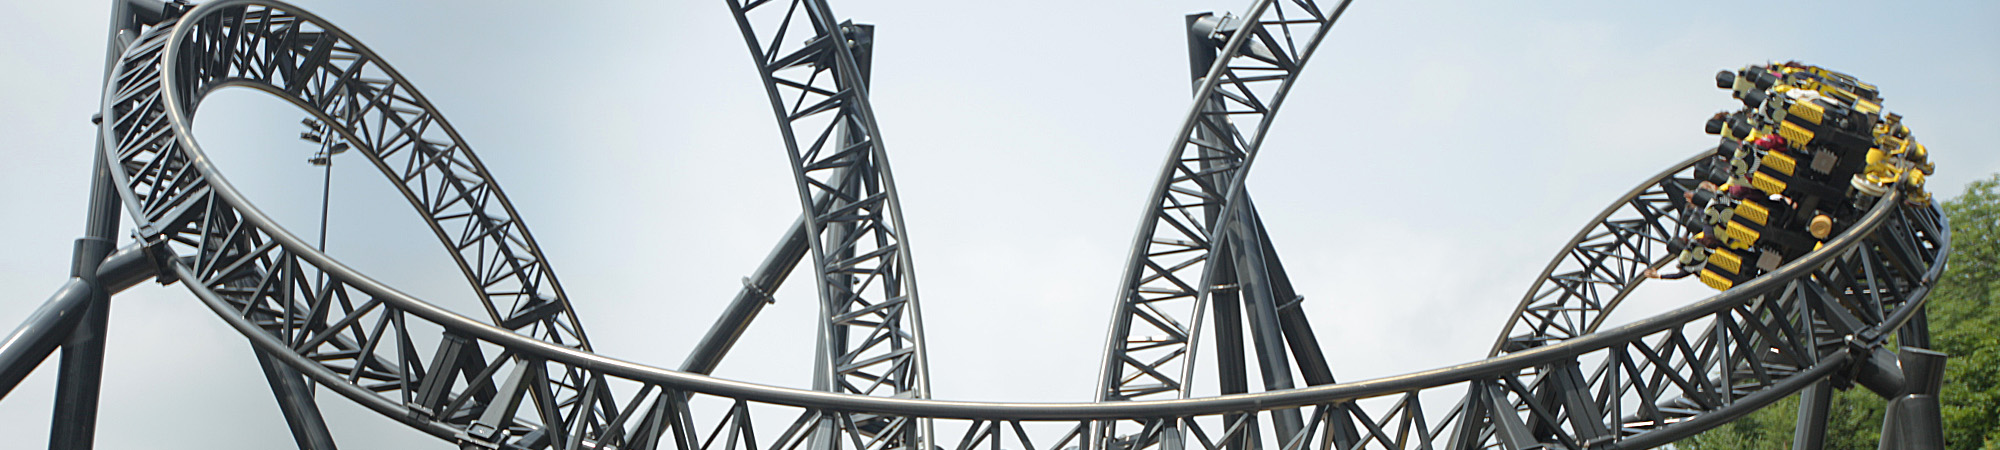 Roller coaster car passes during rapid capture at The Smiler